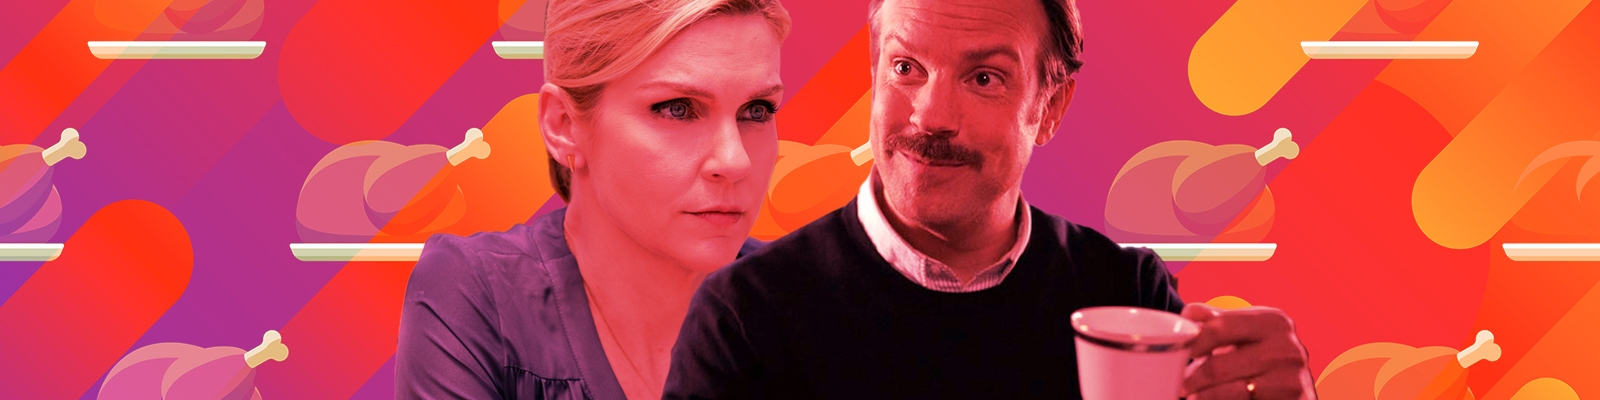 From Kim Wexler To 'Money Plane': An Incomplete List Of TV And Movie Things To Be Thankful For In 2020